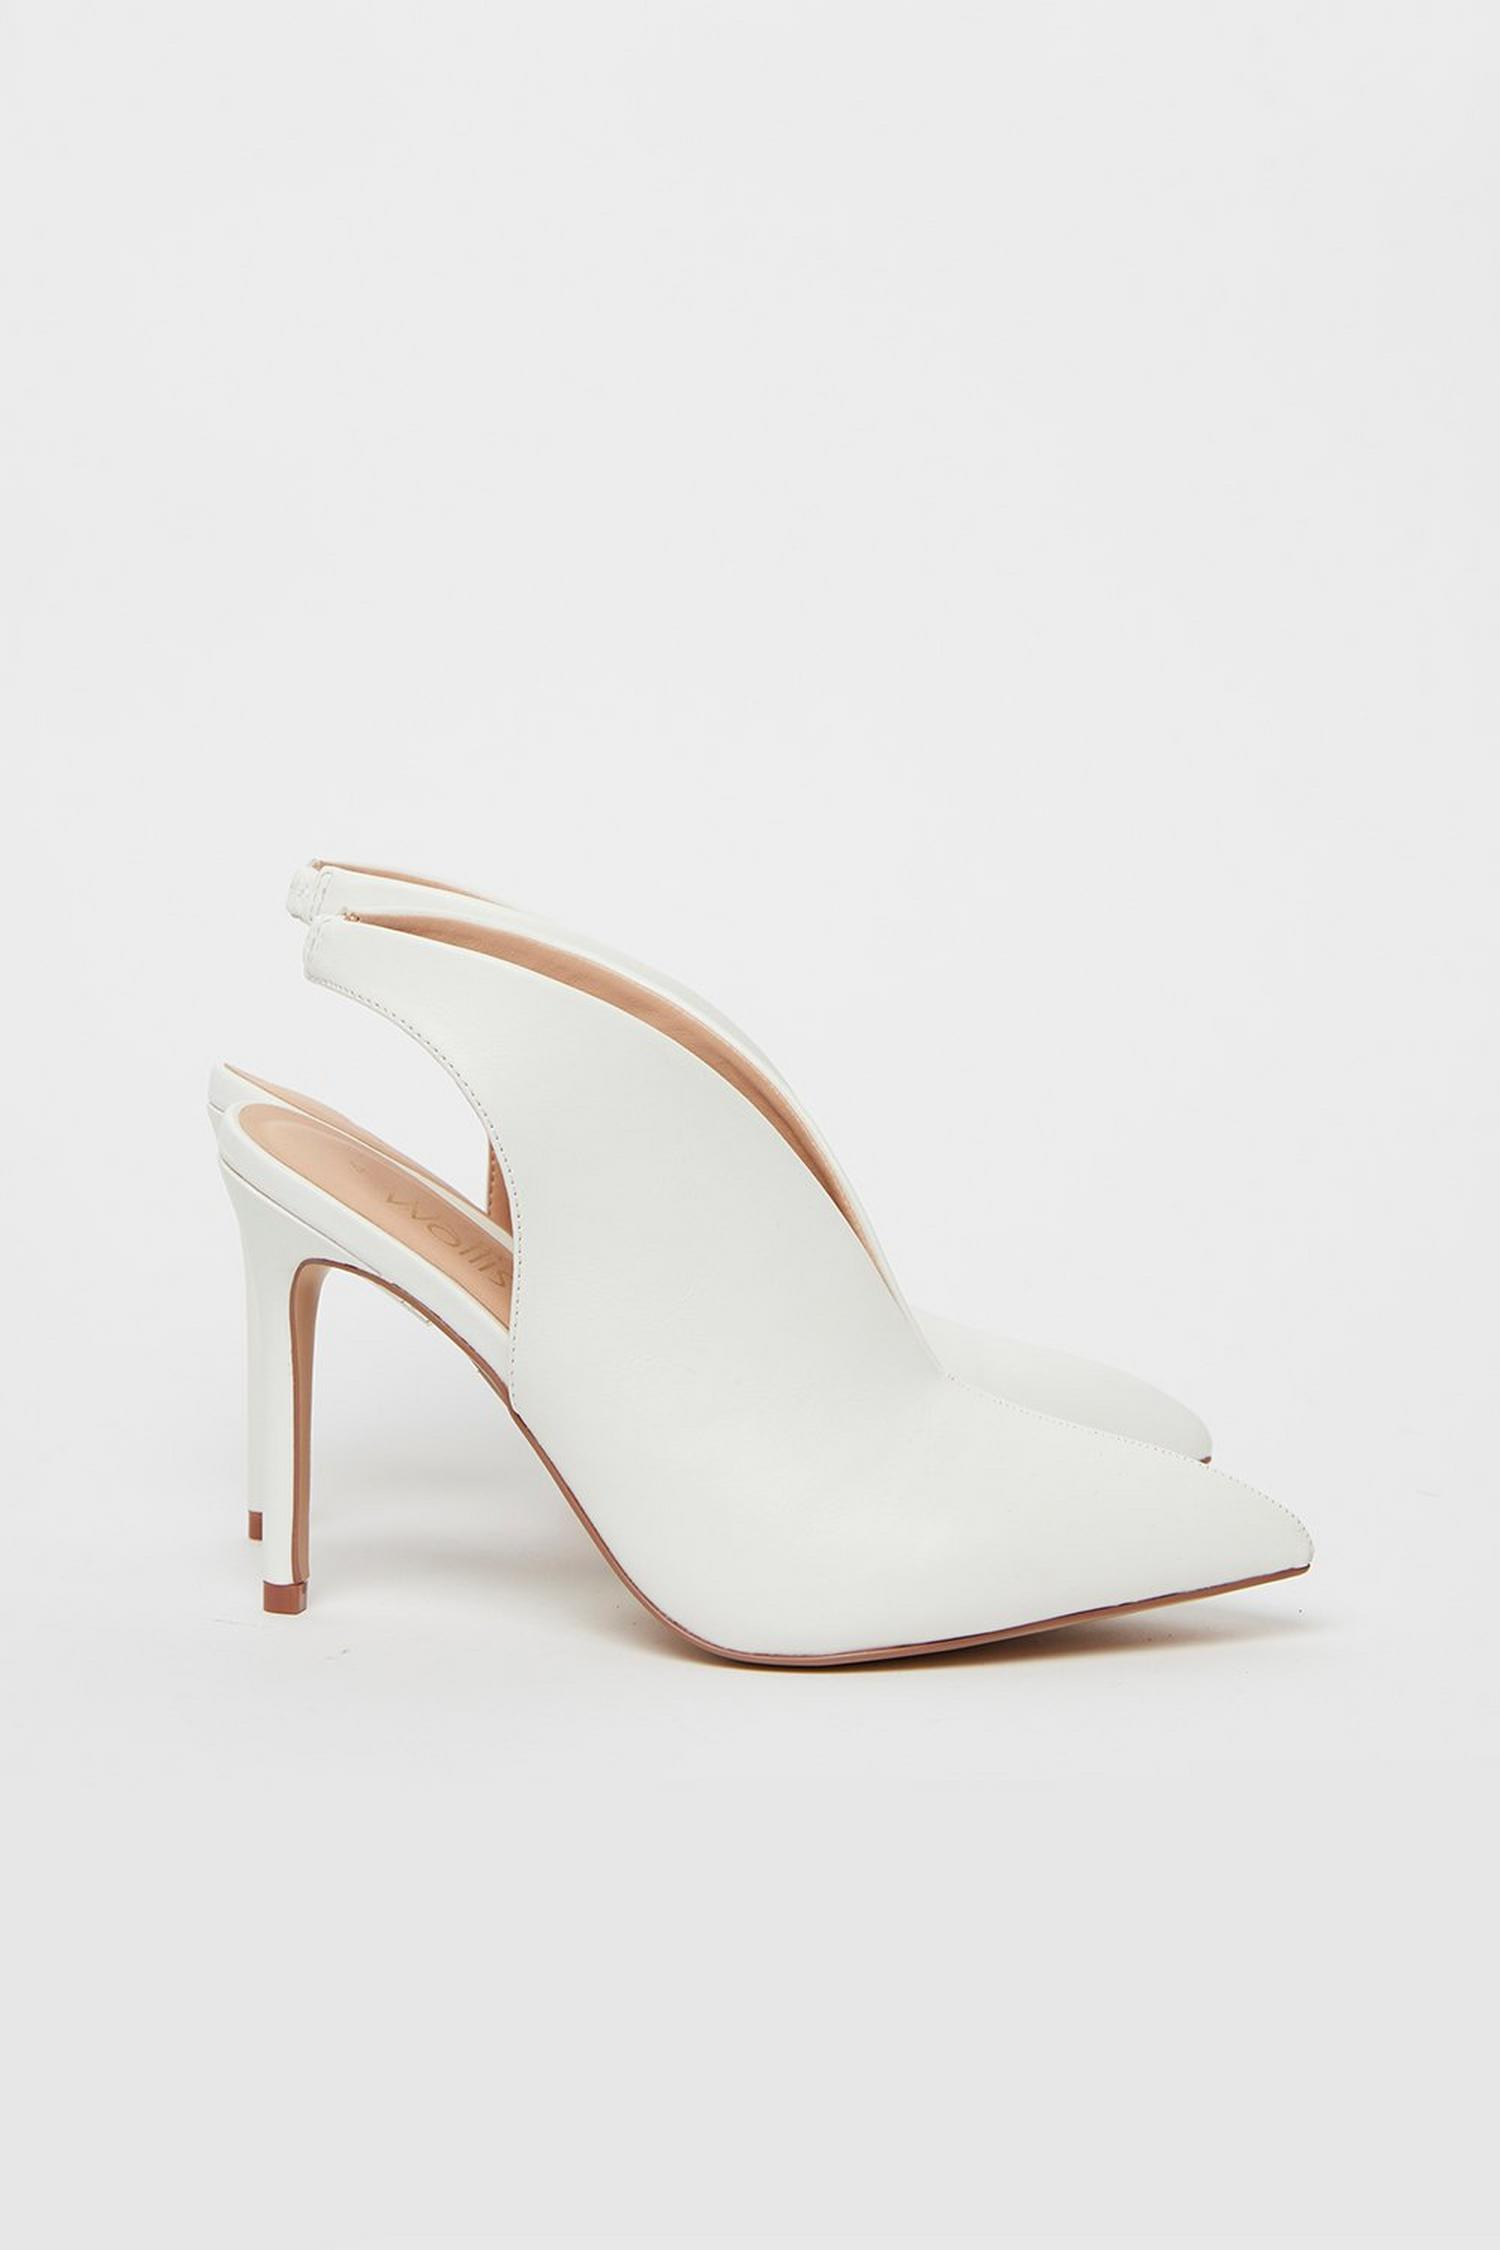 173 White Slingback Shoe Boot image number 2